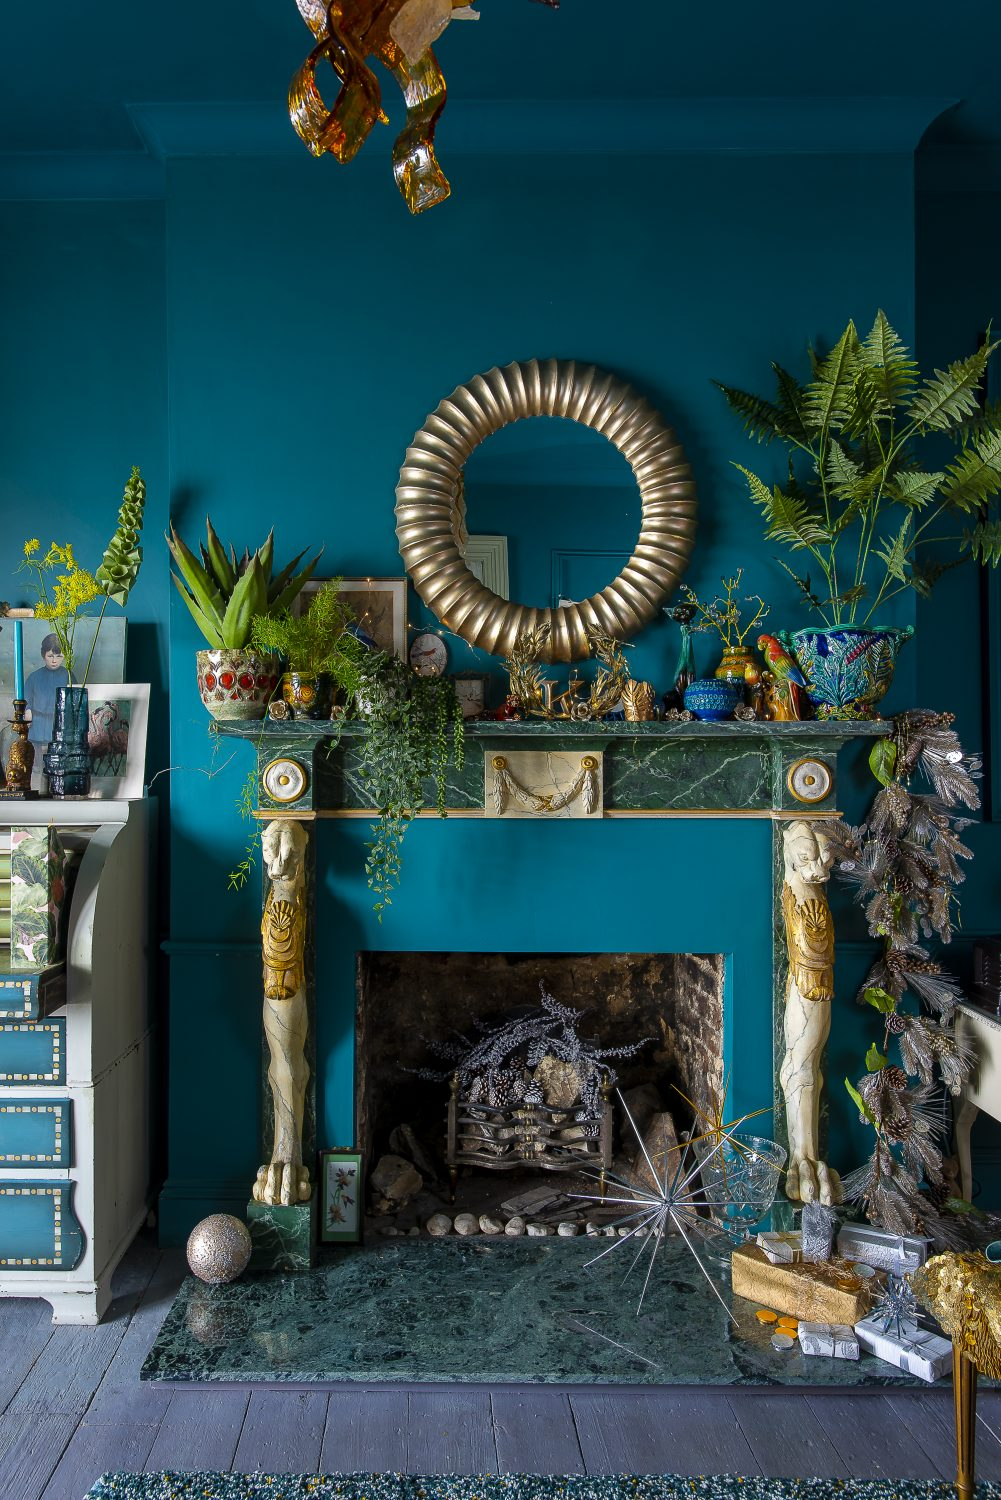 High ceilings and luxe touches of gold and marble add to a sense of grandeur, making the flat feel much larger than it really is. A round mirror, with ridges not dissimilar to an ammonite, sits above the mantelpiece adorned with an eclectic mix of ornaments, artworks and faux plants